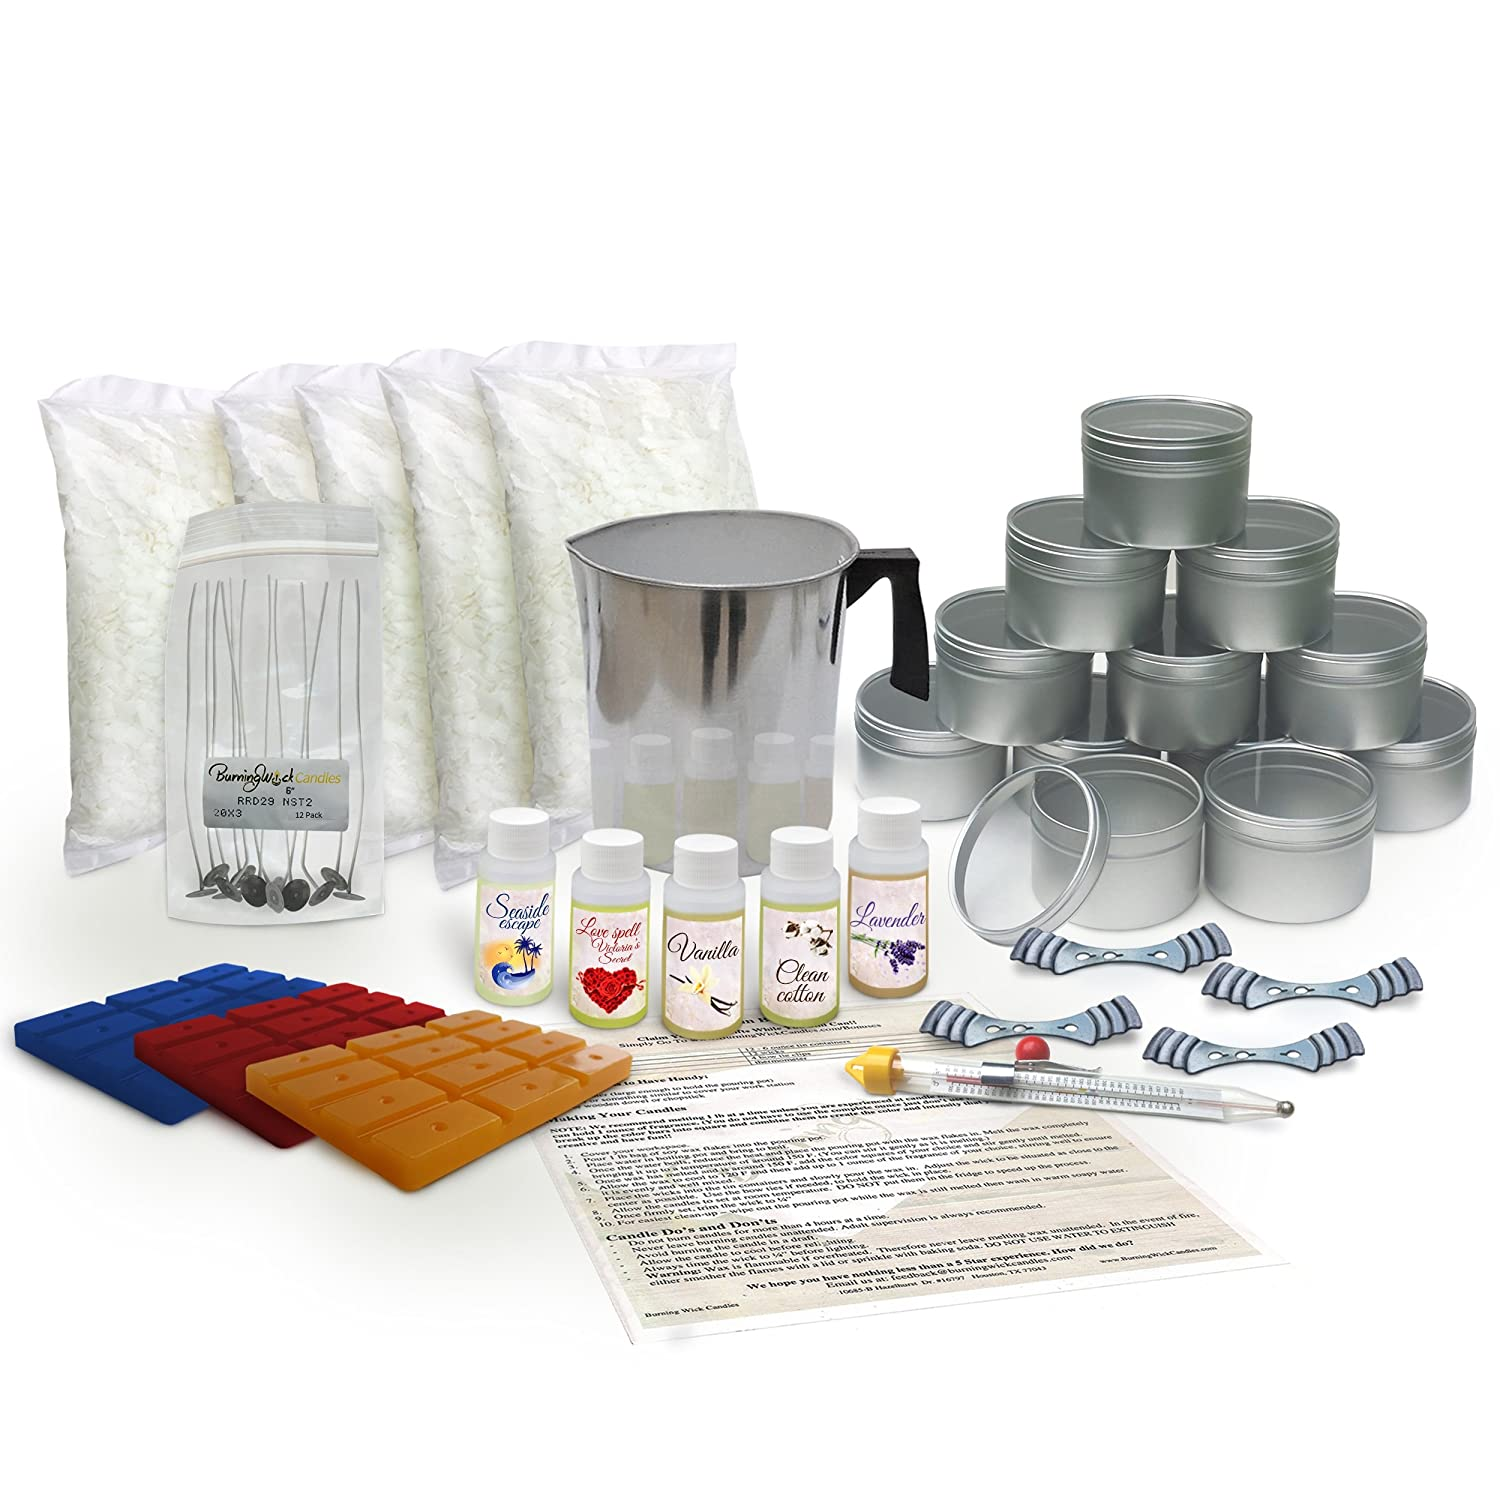 We Carry the Best Candle Making Supplies at Great Prices along with Tips, Advice and Other Items for the Home Crafting Industry, Click Here to Shop With Us Today!